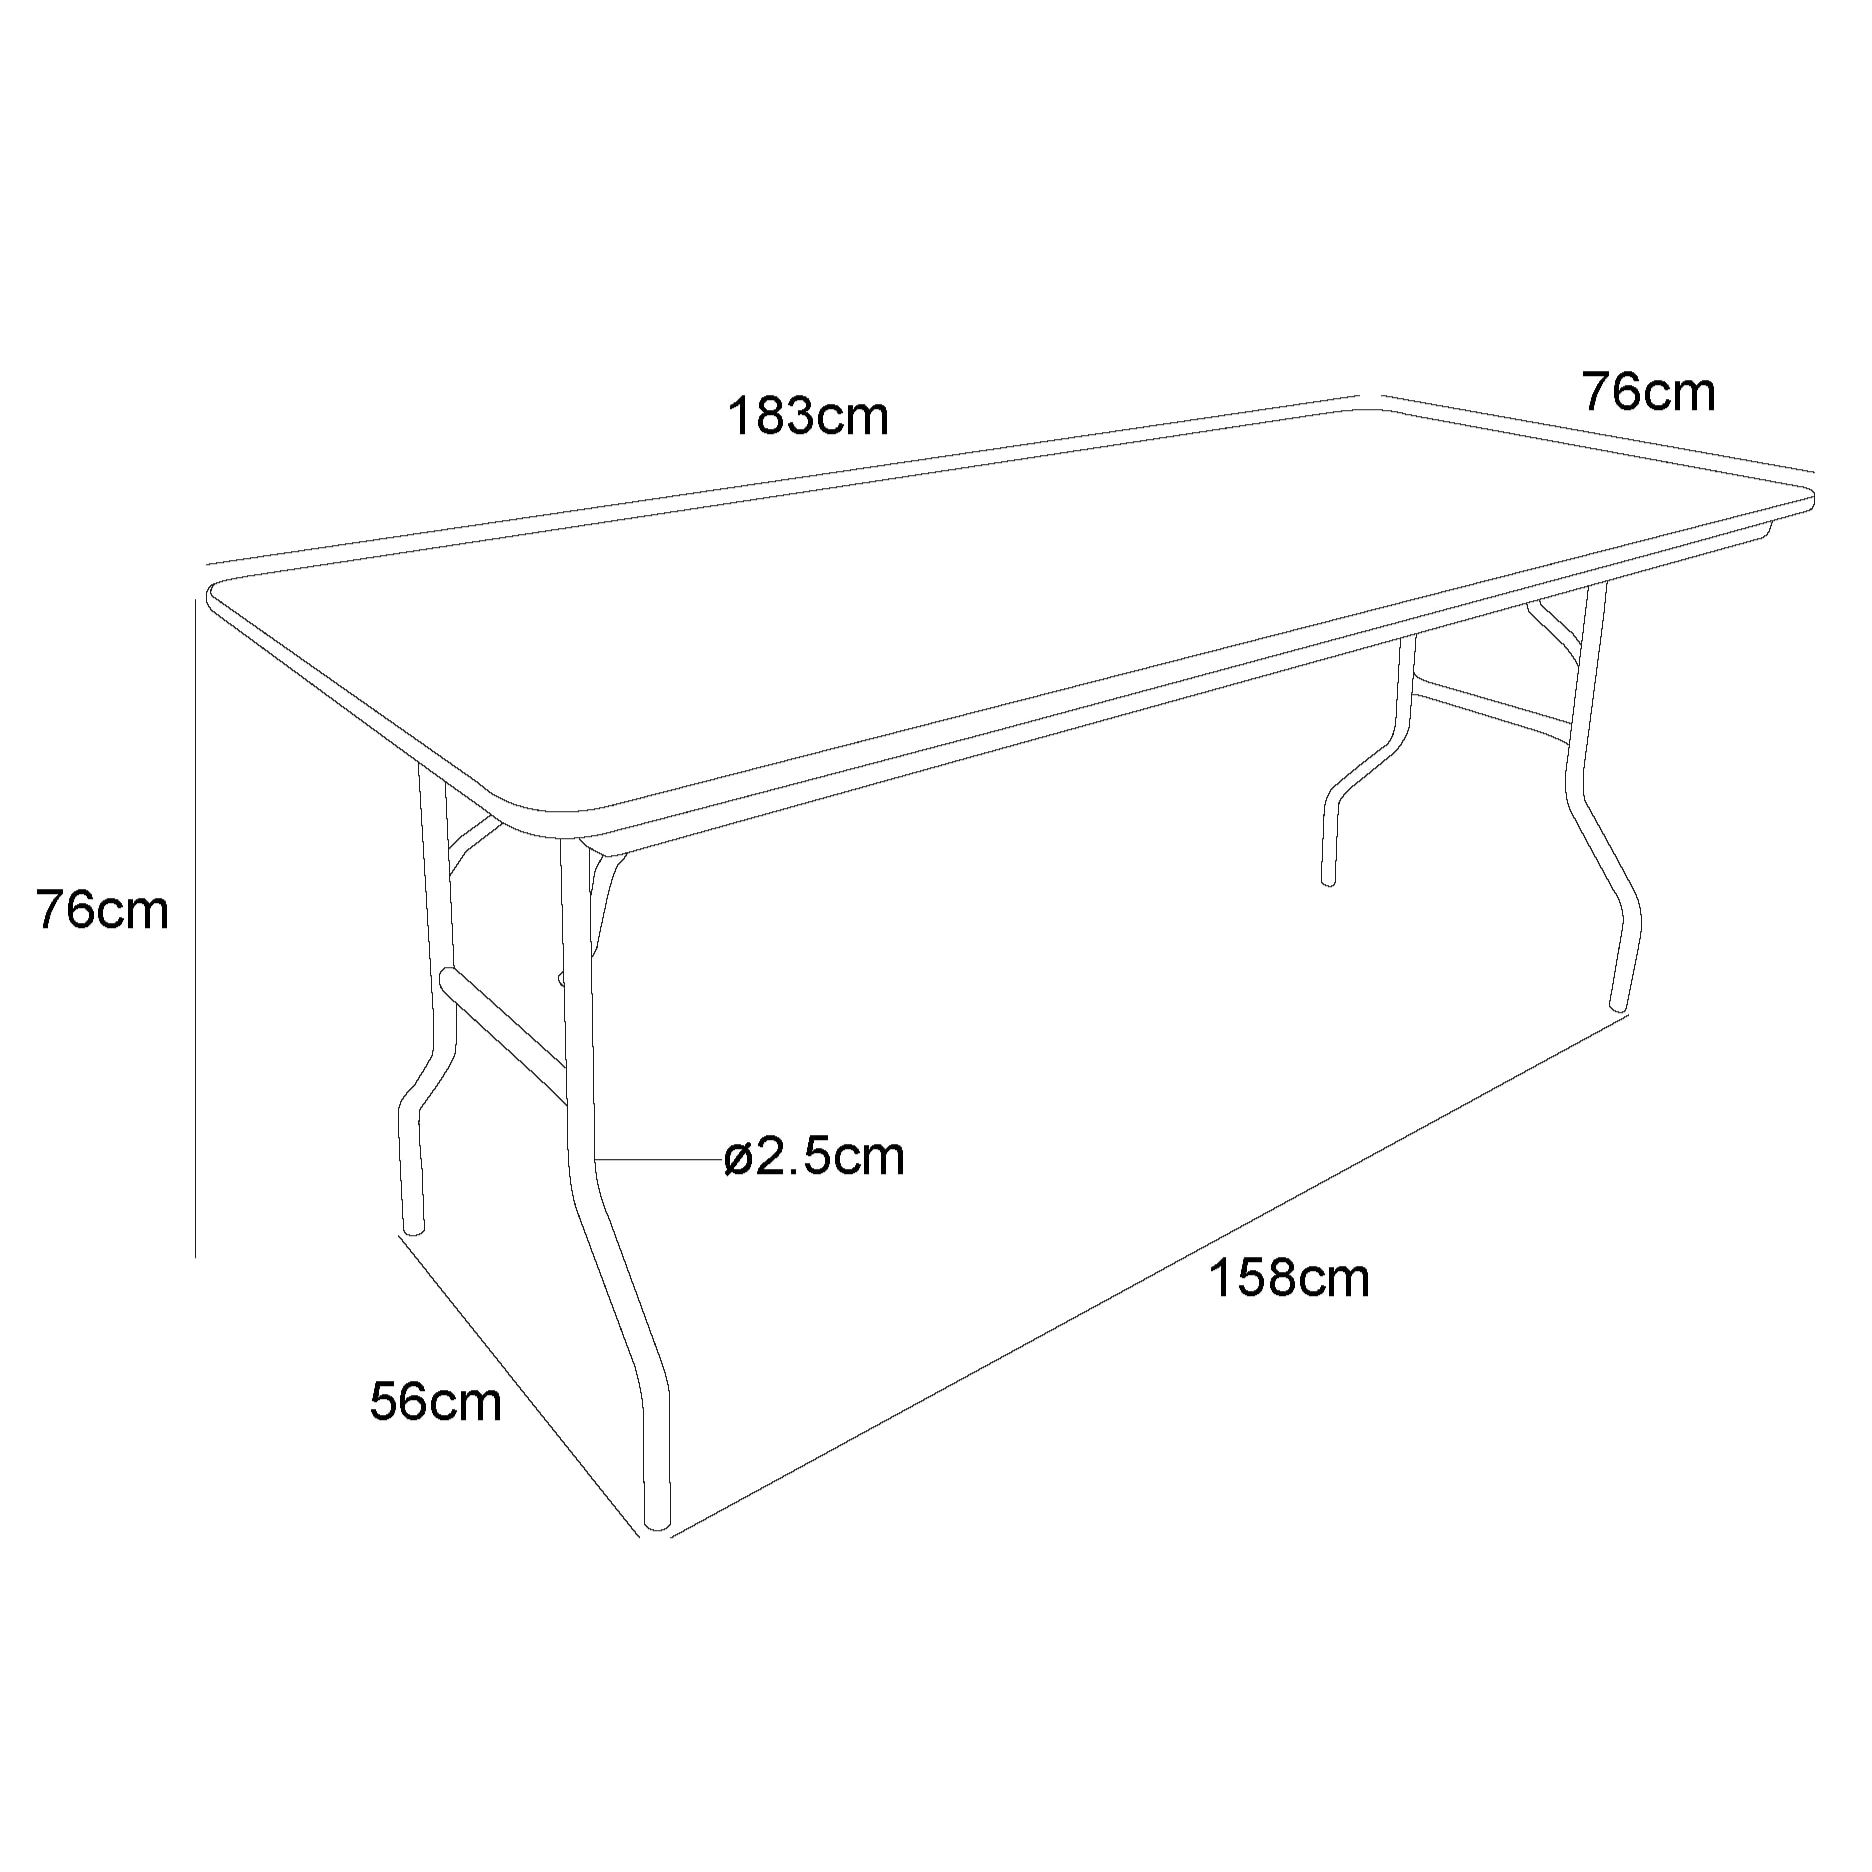 Table pliante rectangulaire Traiteur 183cm / 8 personnes